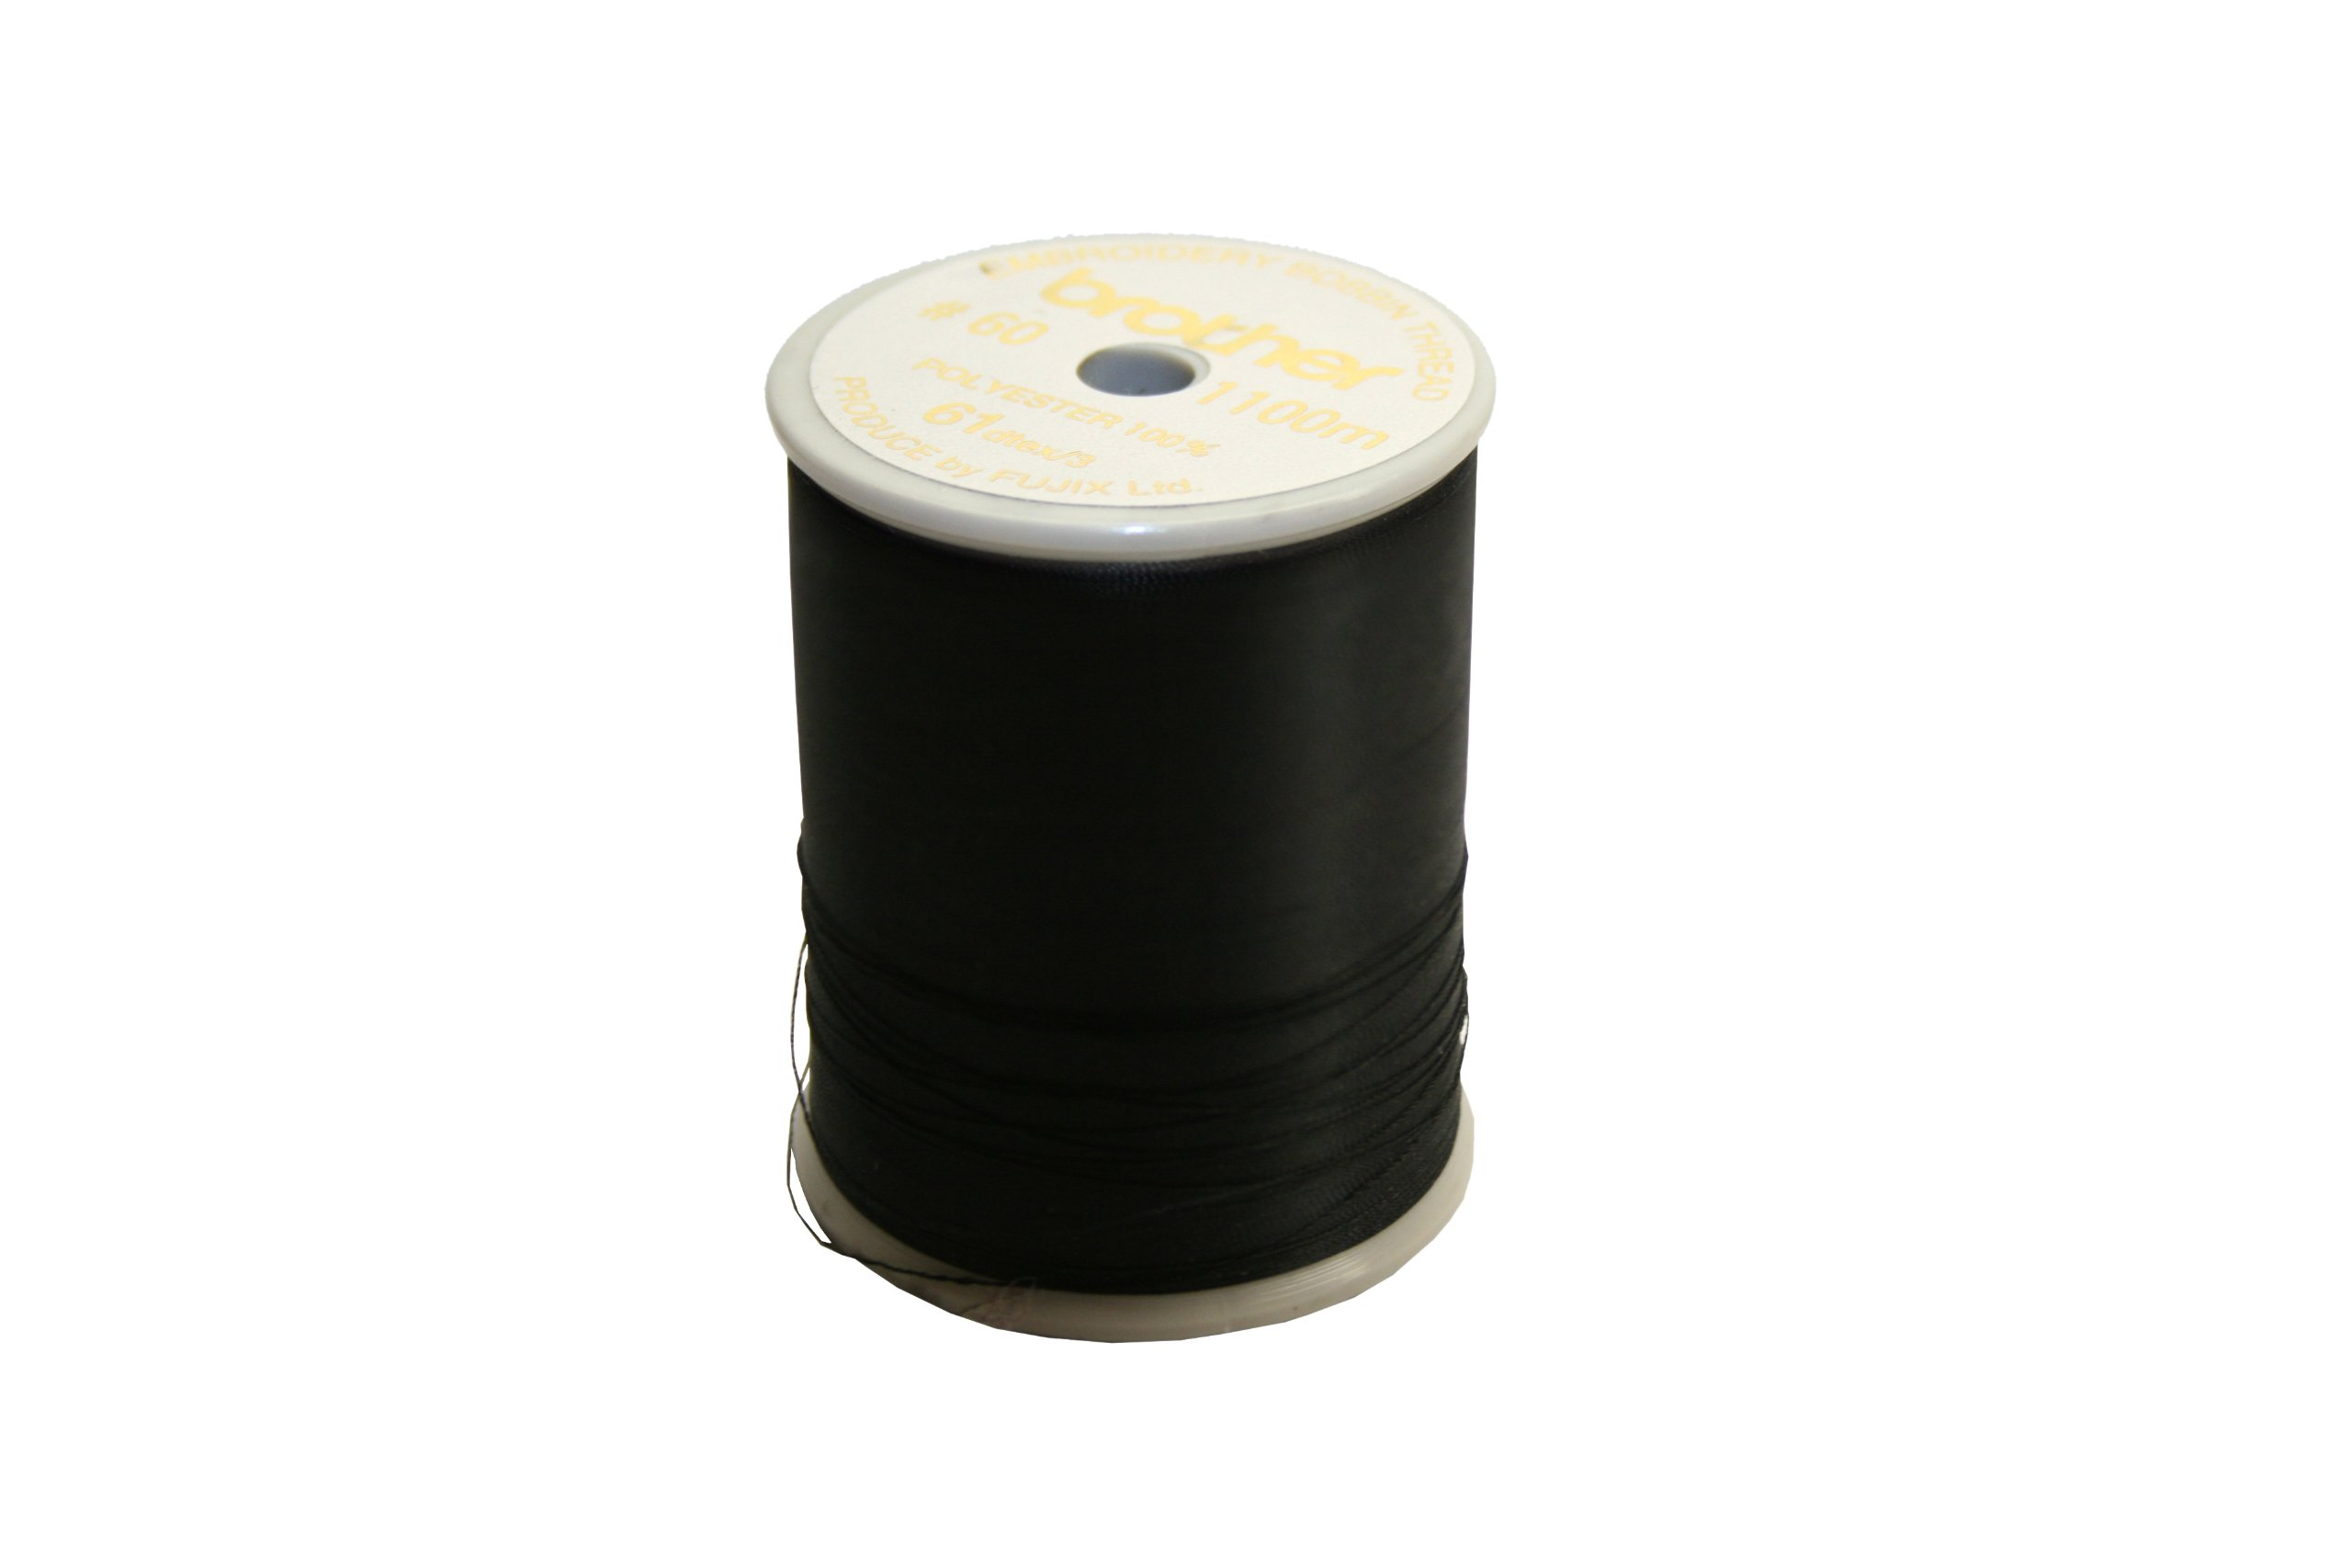 Brother 5 Pack SAEBT999 Embroidery Thread, Black, 60 Weight by Brother